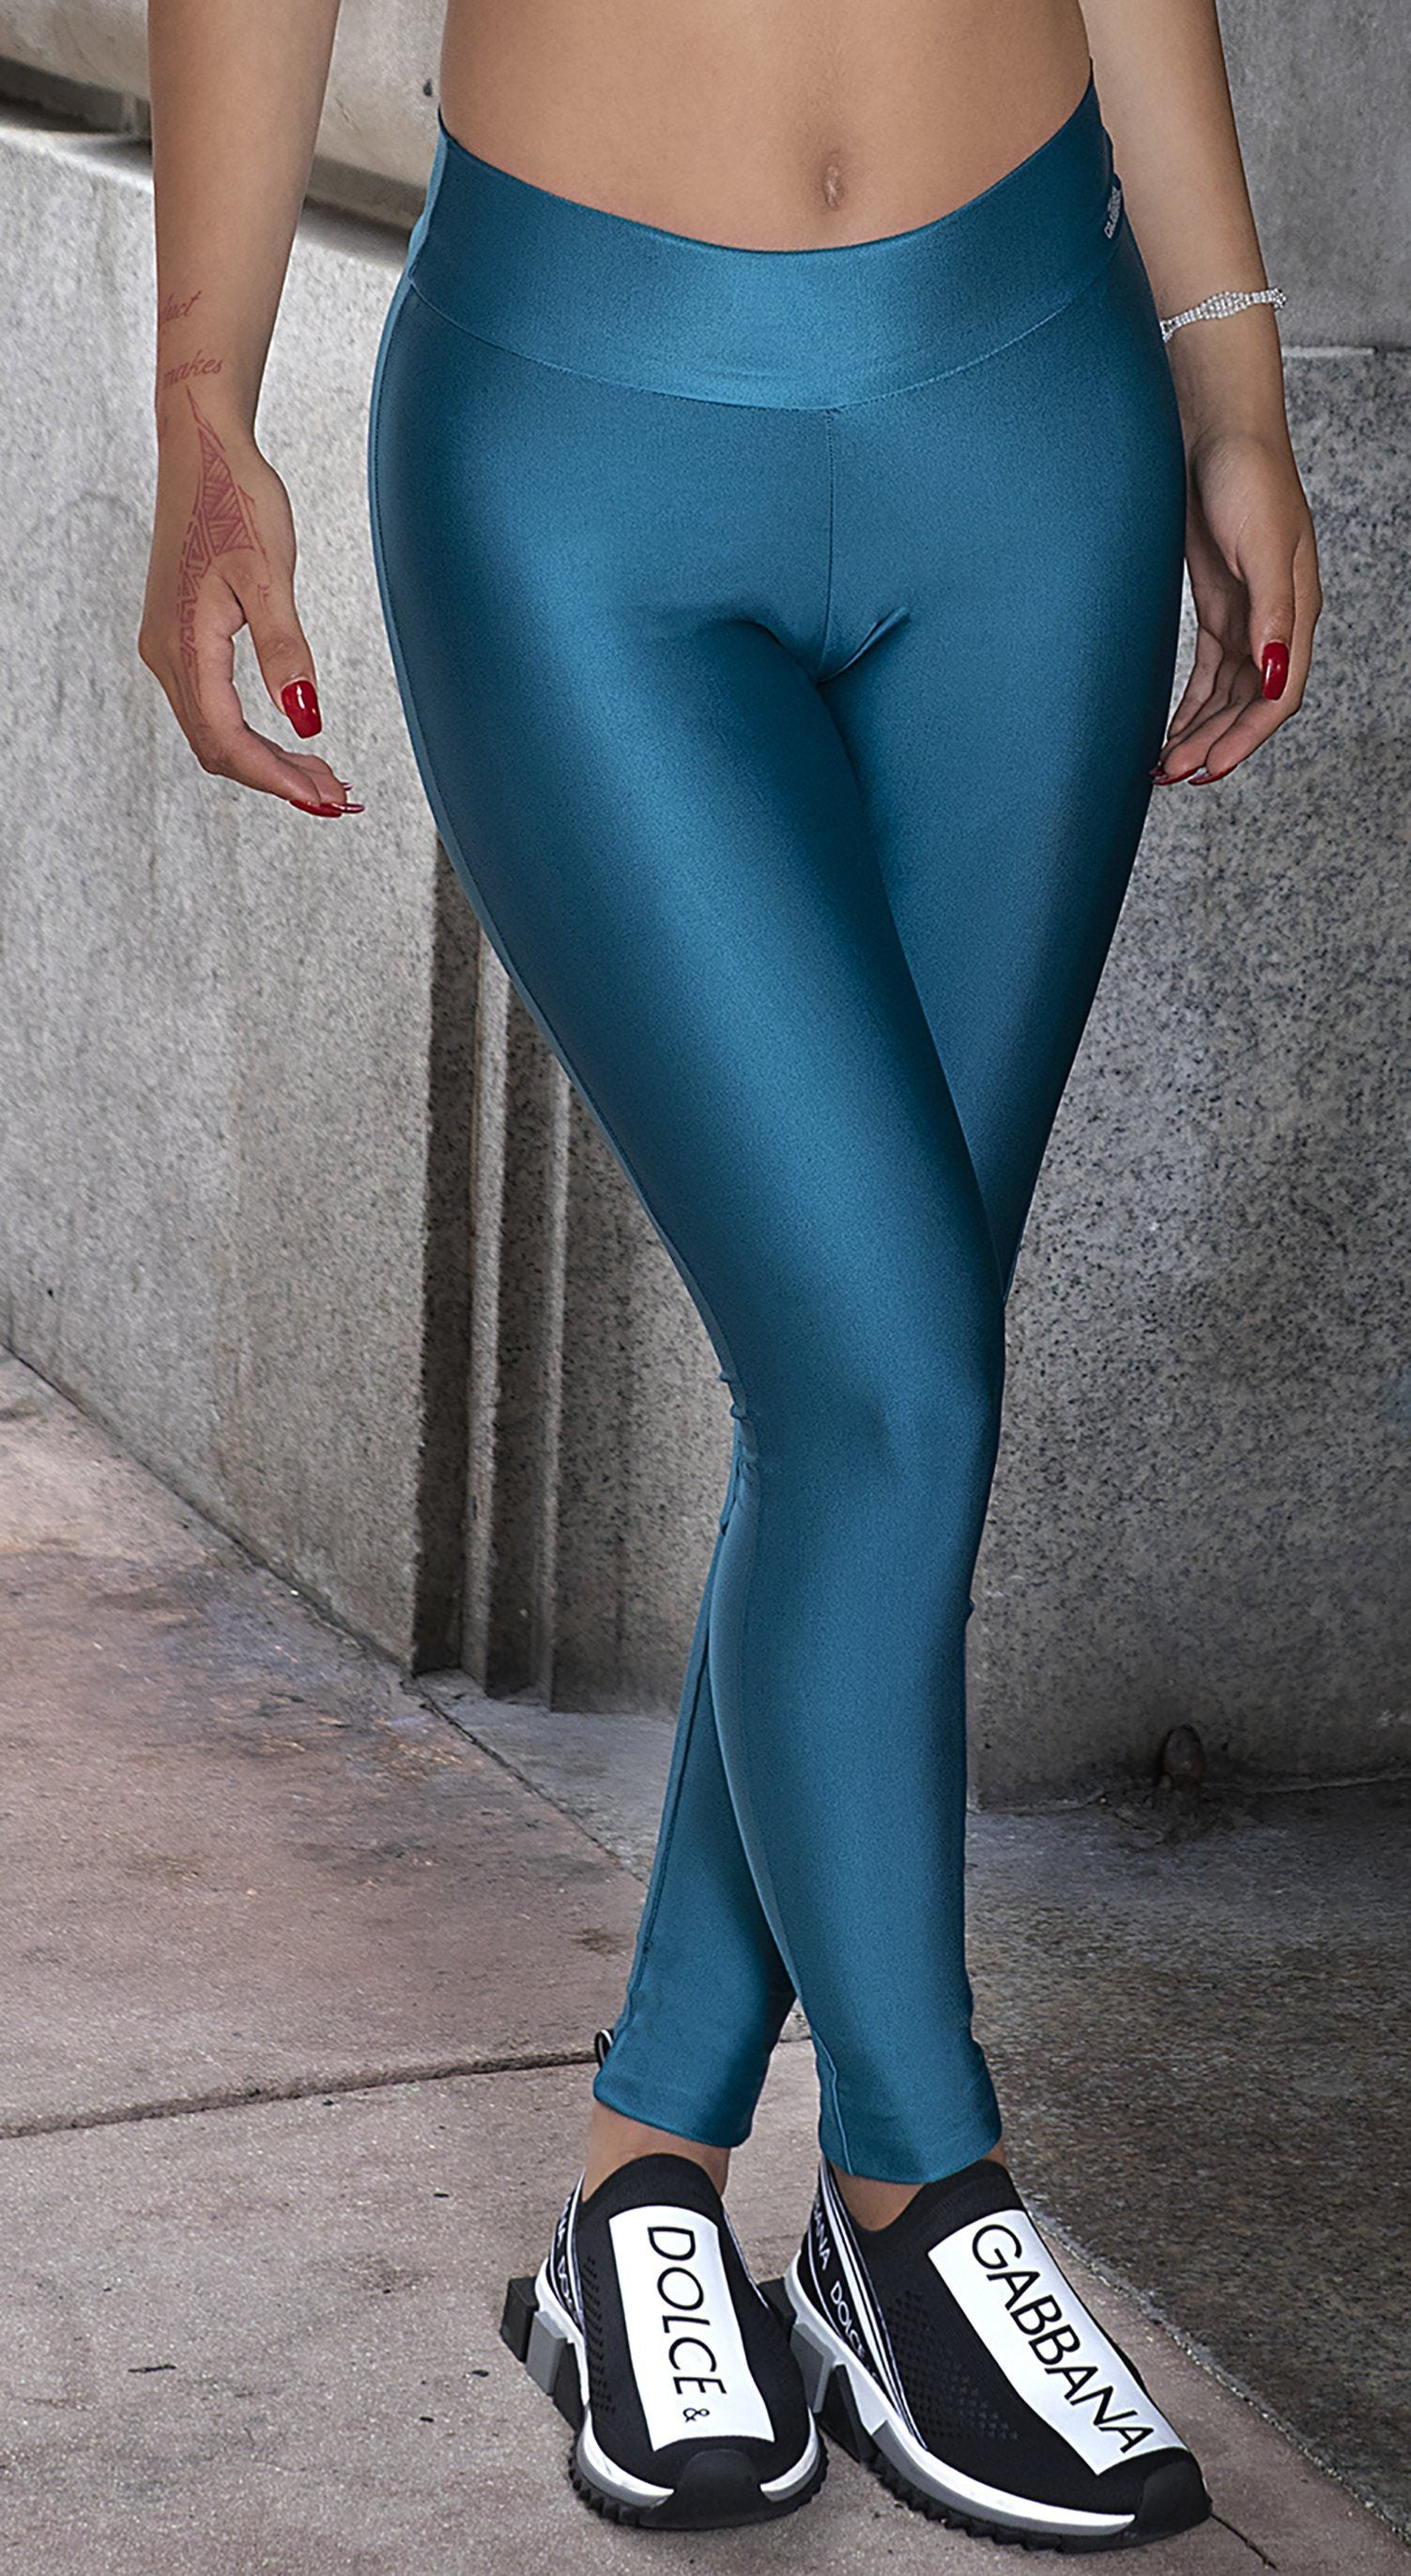 Sobe Scrunch Booty Teal Green Brazilian Leggings